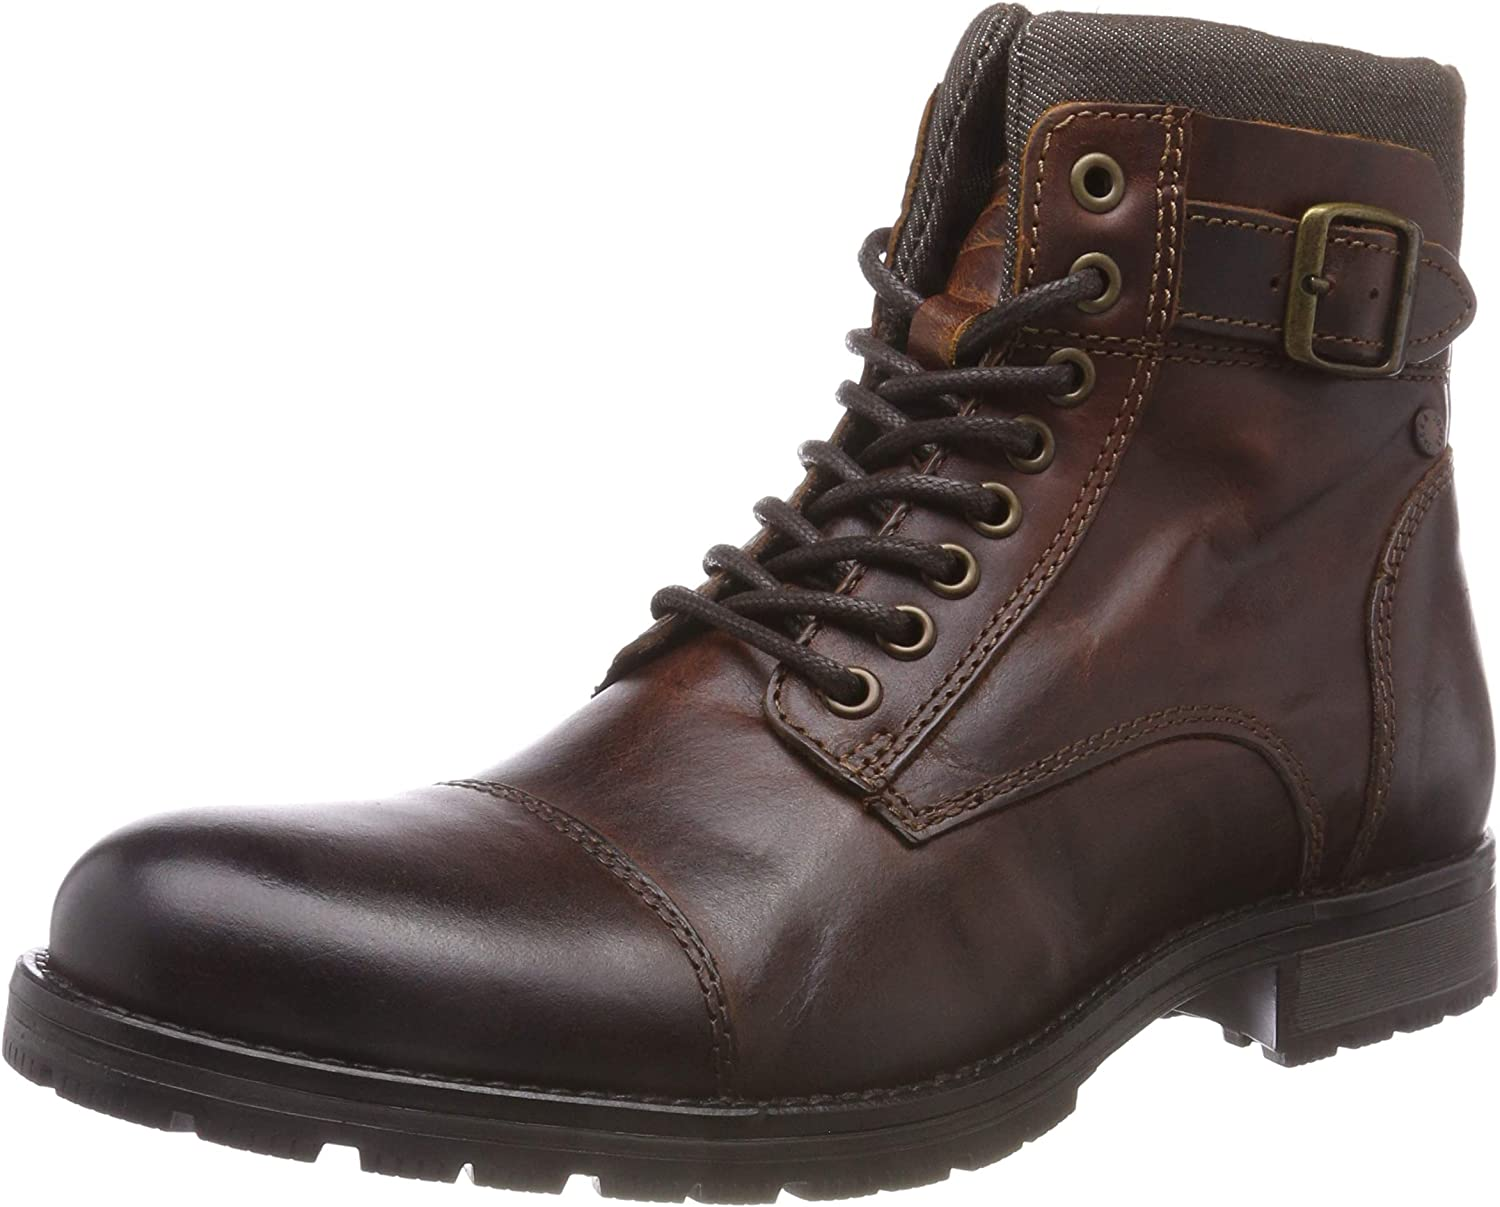 Jack & Jones Jfwalbany Leather Brown Stone STS, Biker Boots para Hombre